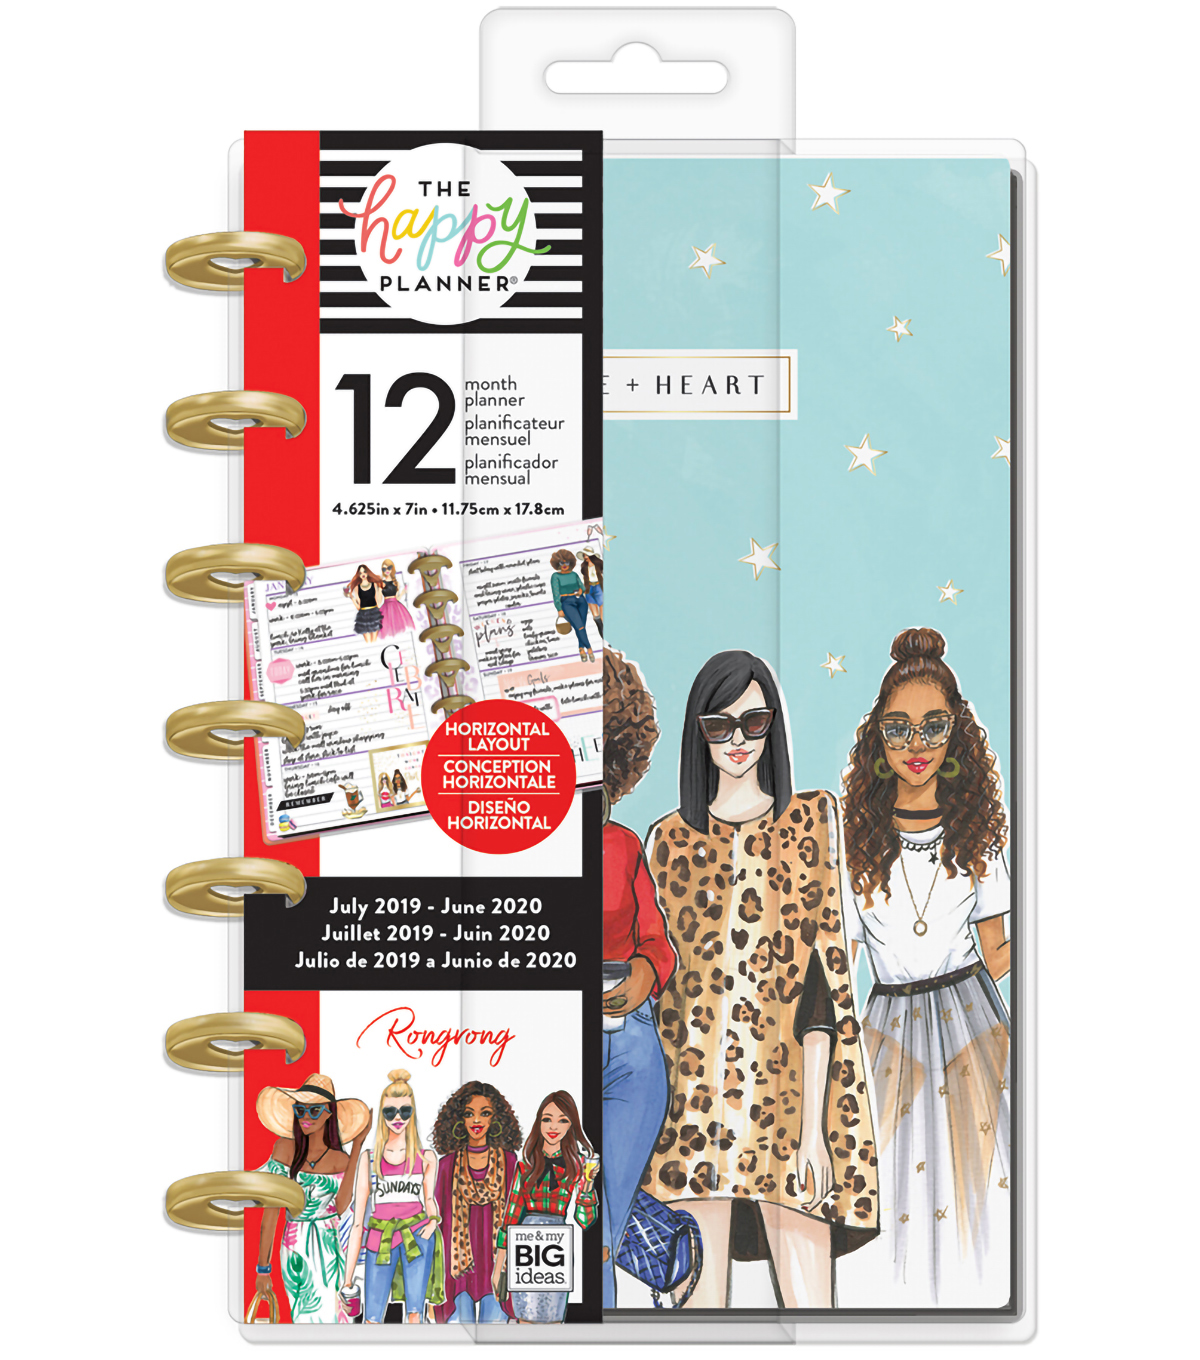 Gift Ideas 16 Year Old Brother Hanukkah 2020 Mini Happy Planner x Rongrong Hustle & Heart 12 Months (2019 2020